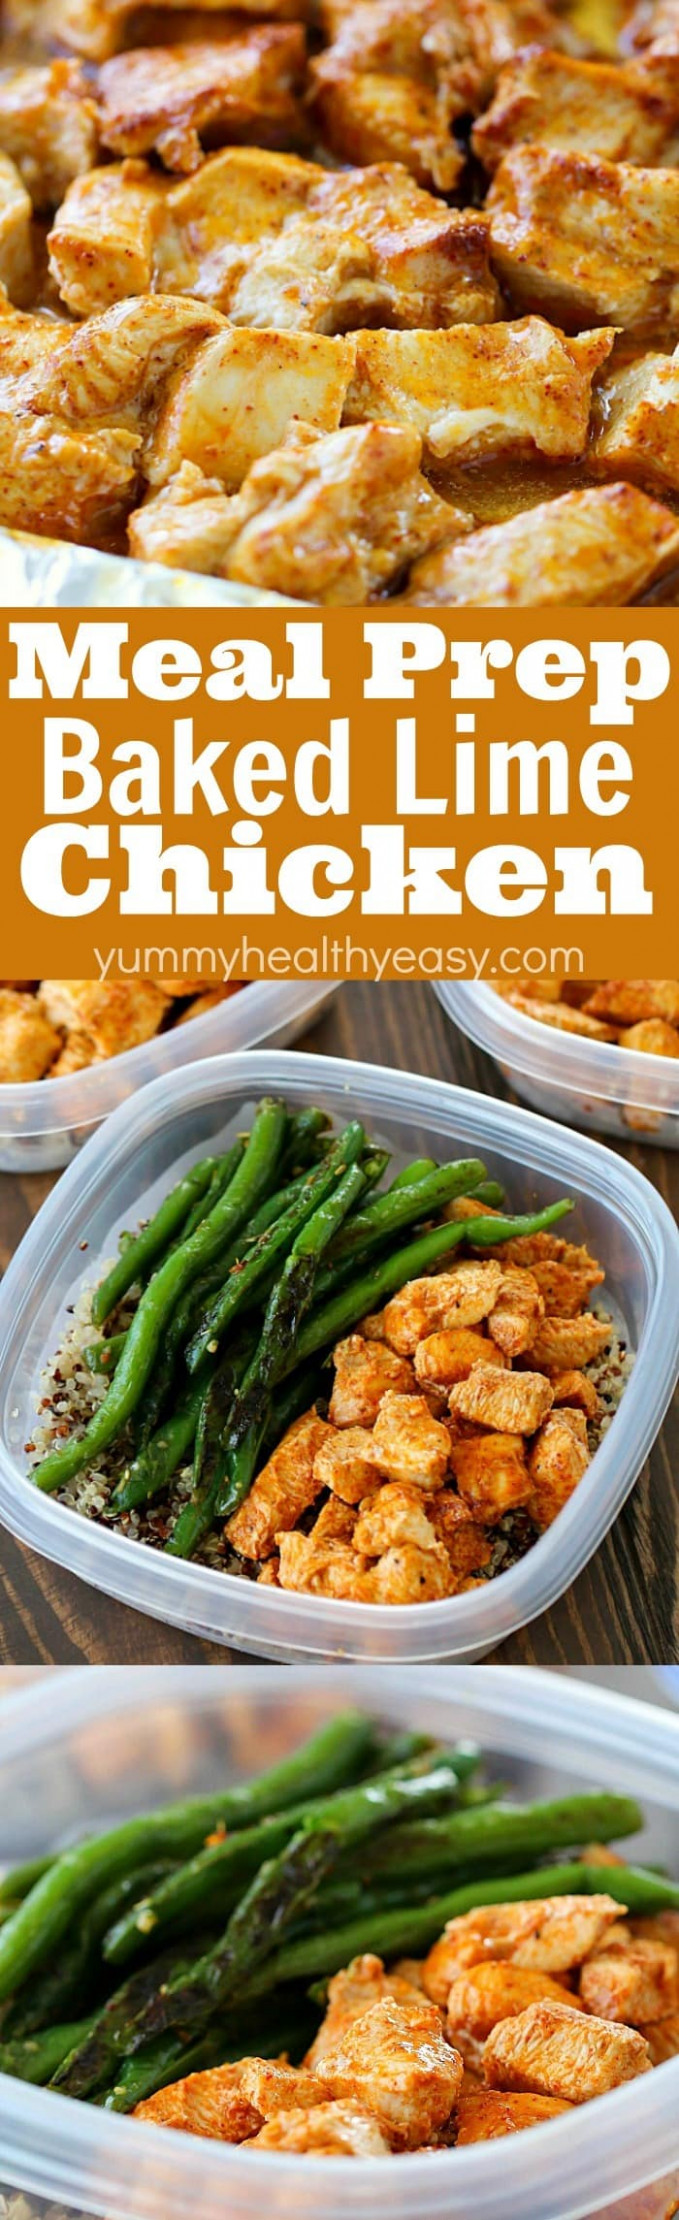 Meal Prep Baked Lime Chicken Bowls - Meal Prep Recipes Chicken